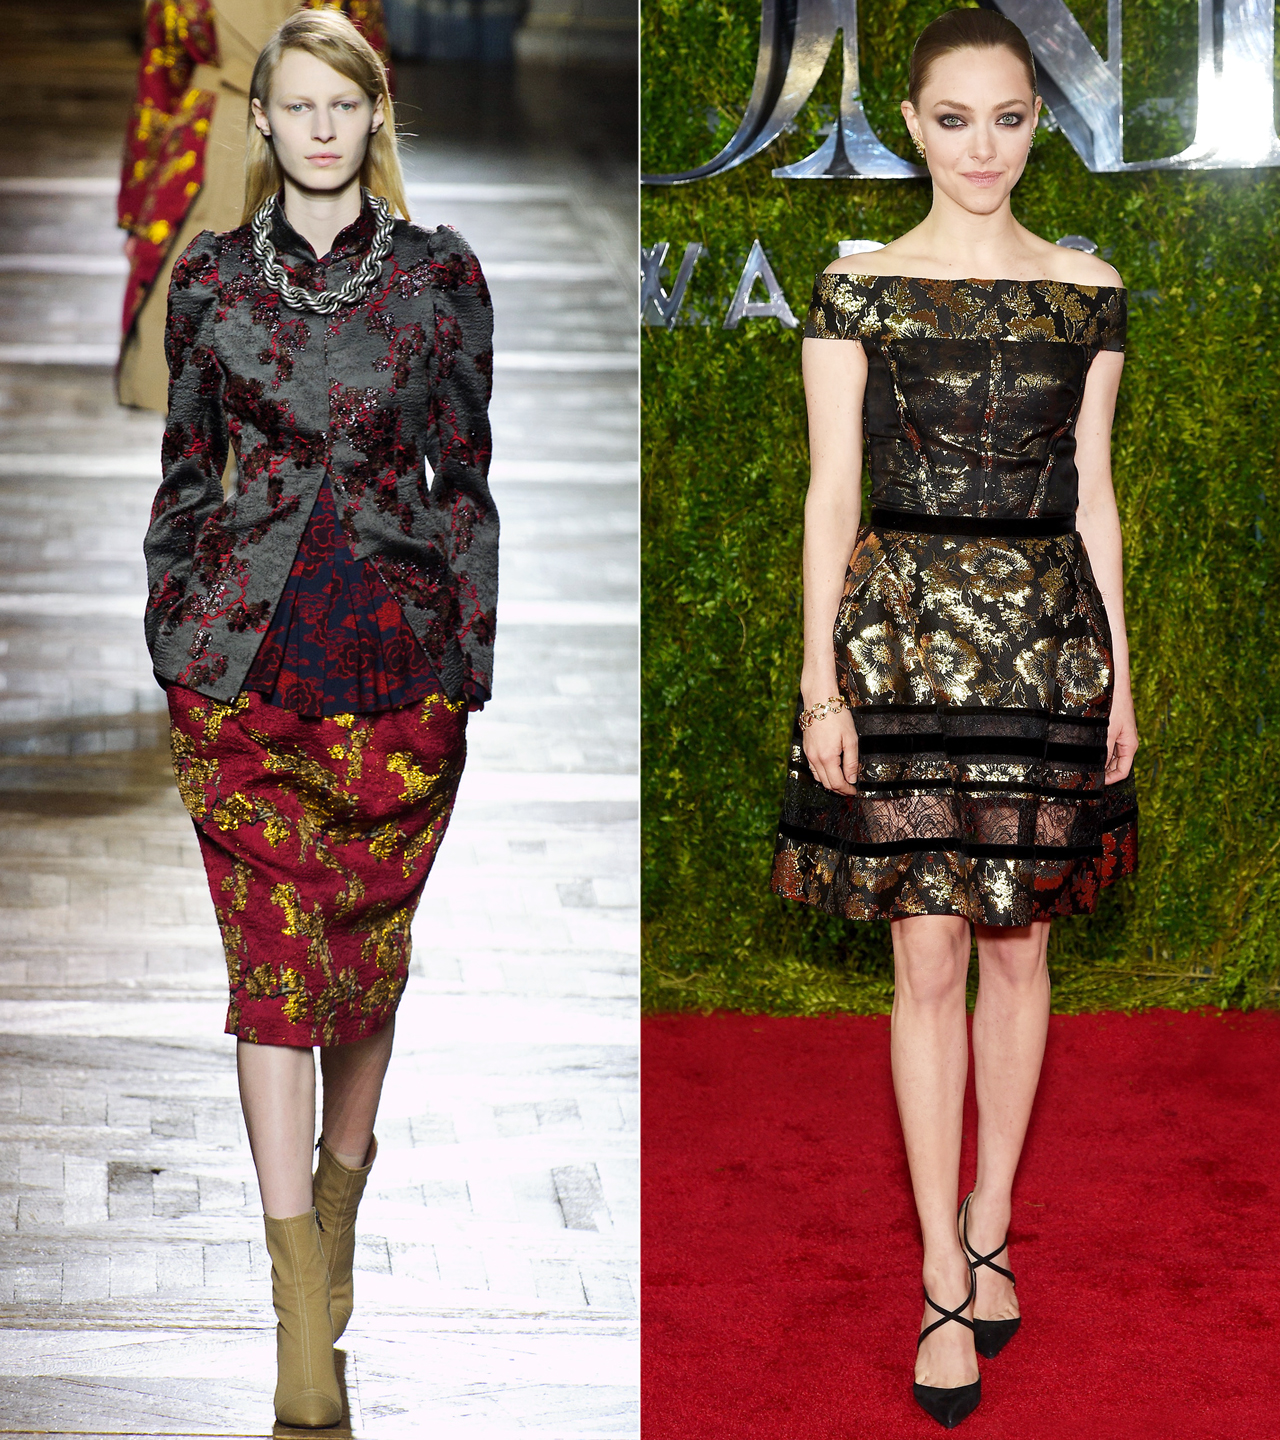 Elevate Your Fall Wardrobe with These DreamyBrocade Pieces